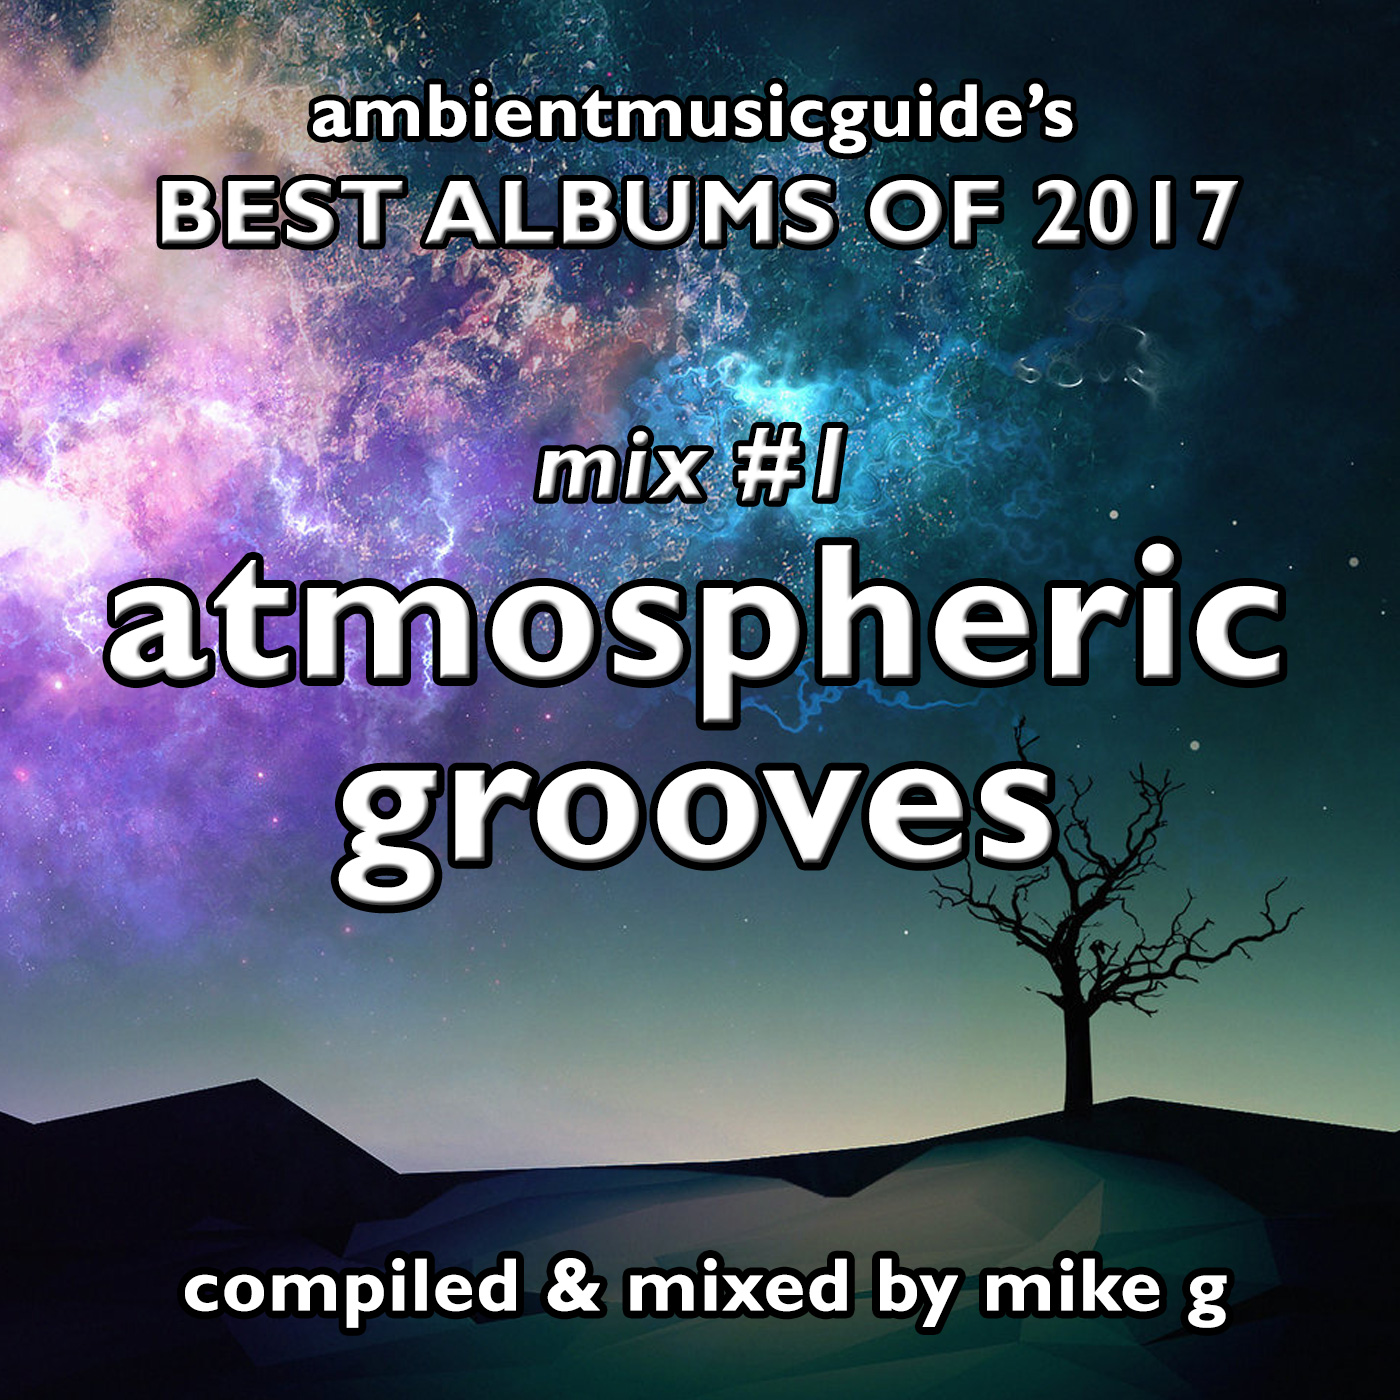 Best Albums 2017 Mix 1 - Atmospheric Grooves mixed by Mike G